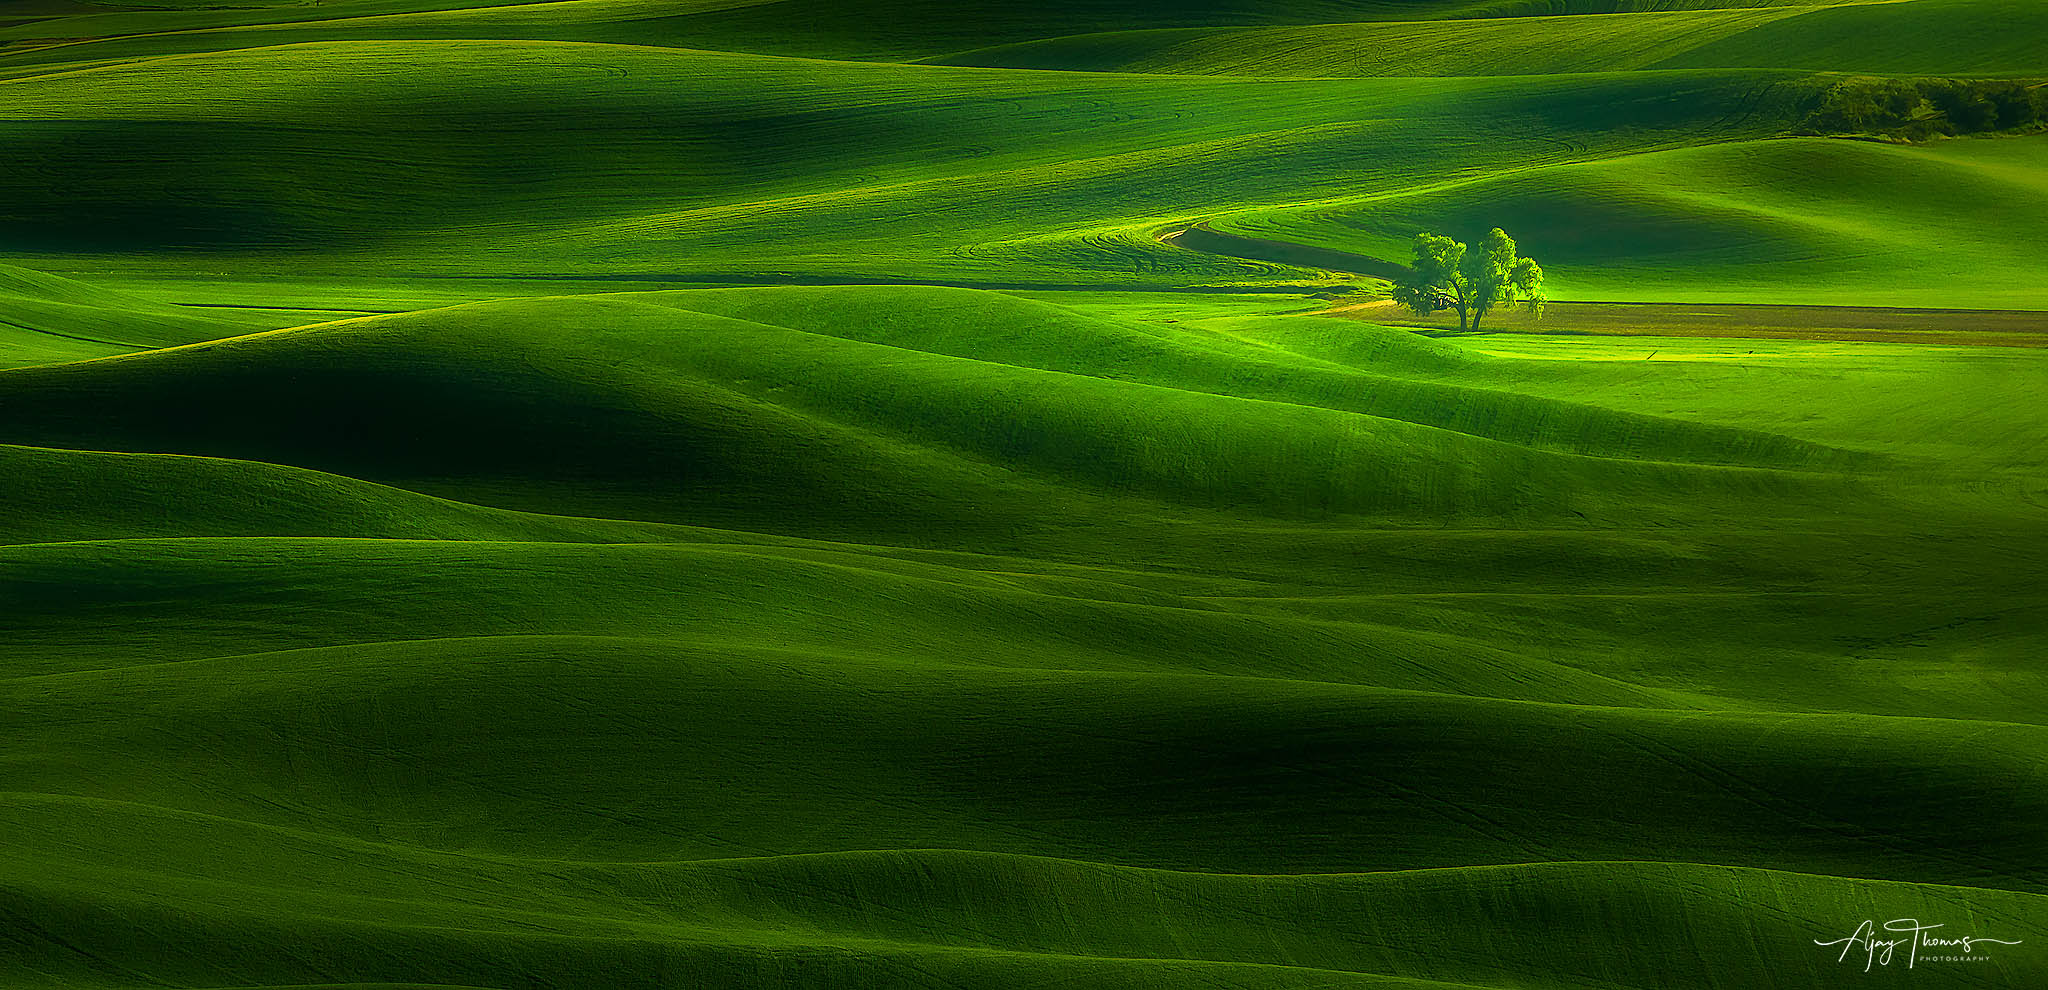 This tree, seen from Steptoe Butte, has been photographed a thousand times. I saw the clouds creating dramatic shadows on the...